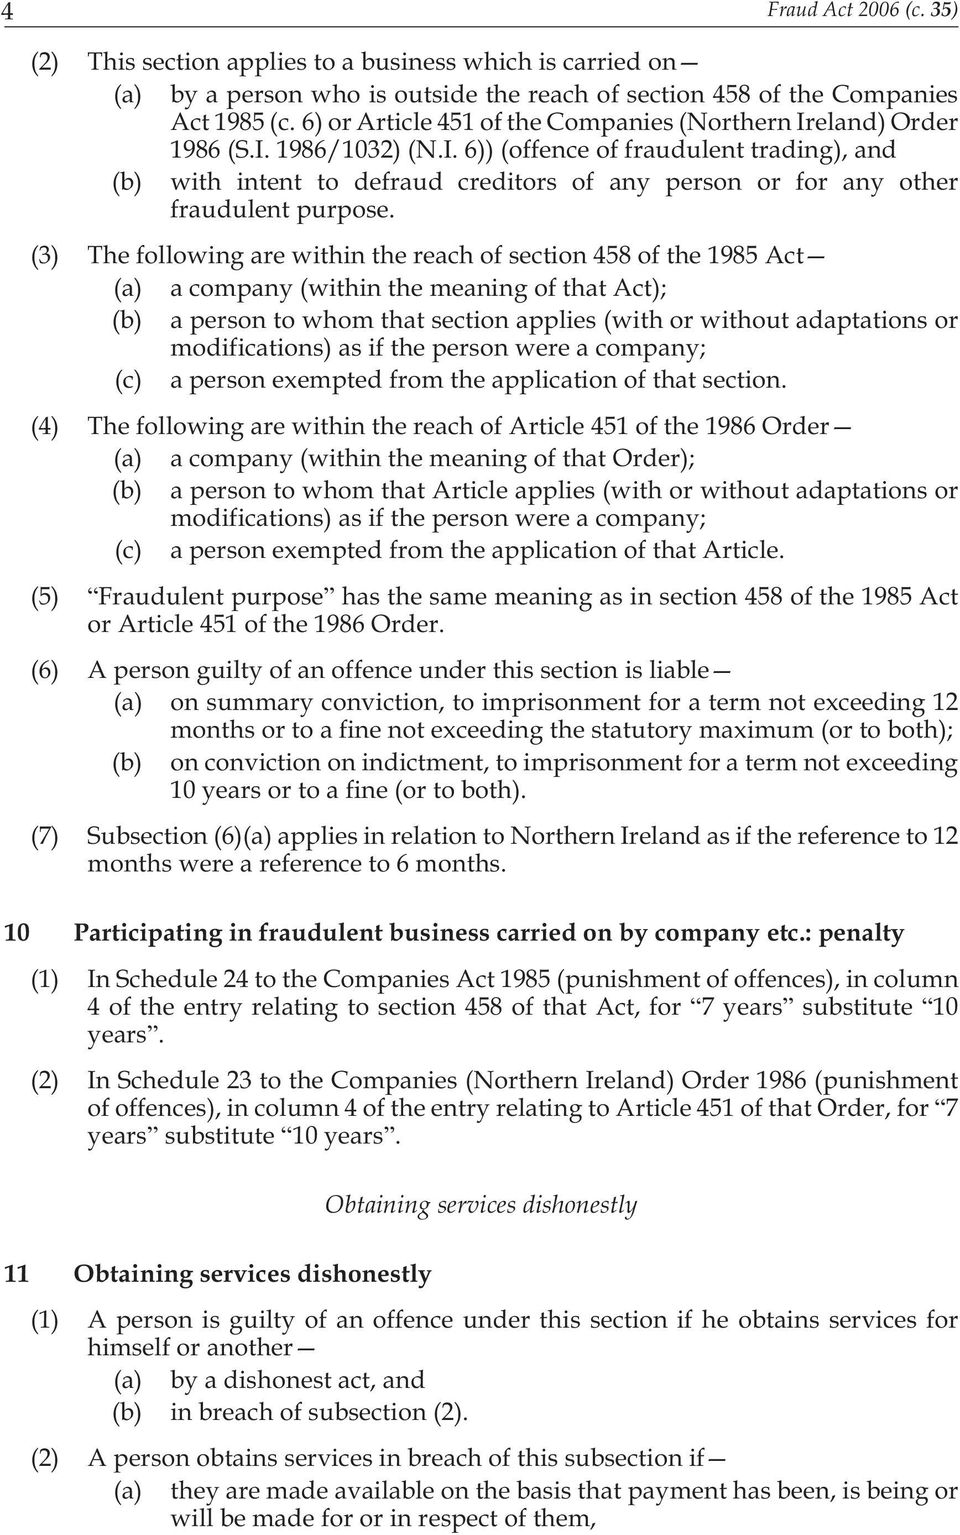 (3) The following are within the reach of section 458 of the 1985 Act (a) a company (within the meaning of that Act); (b) a person to whom that section applies (with or without adaptations or